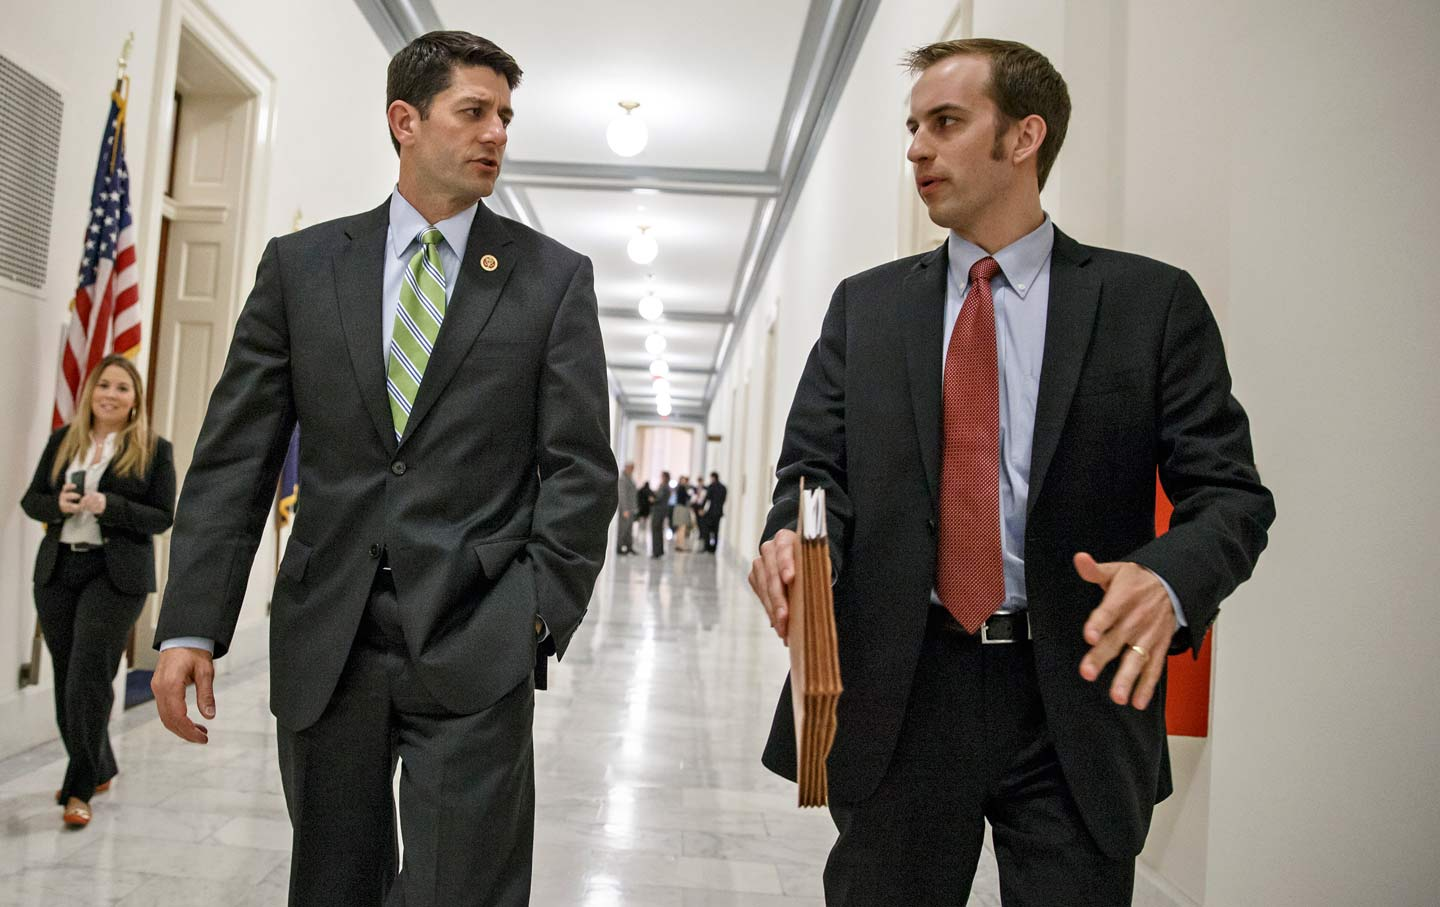 Paul Ryan confers with an aide.